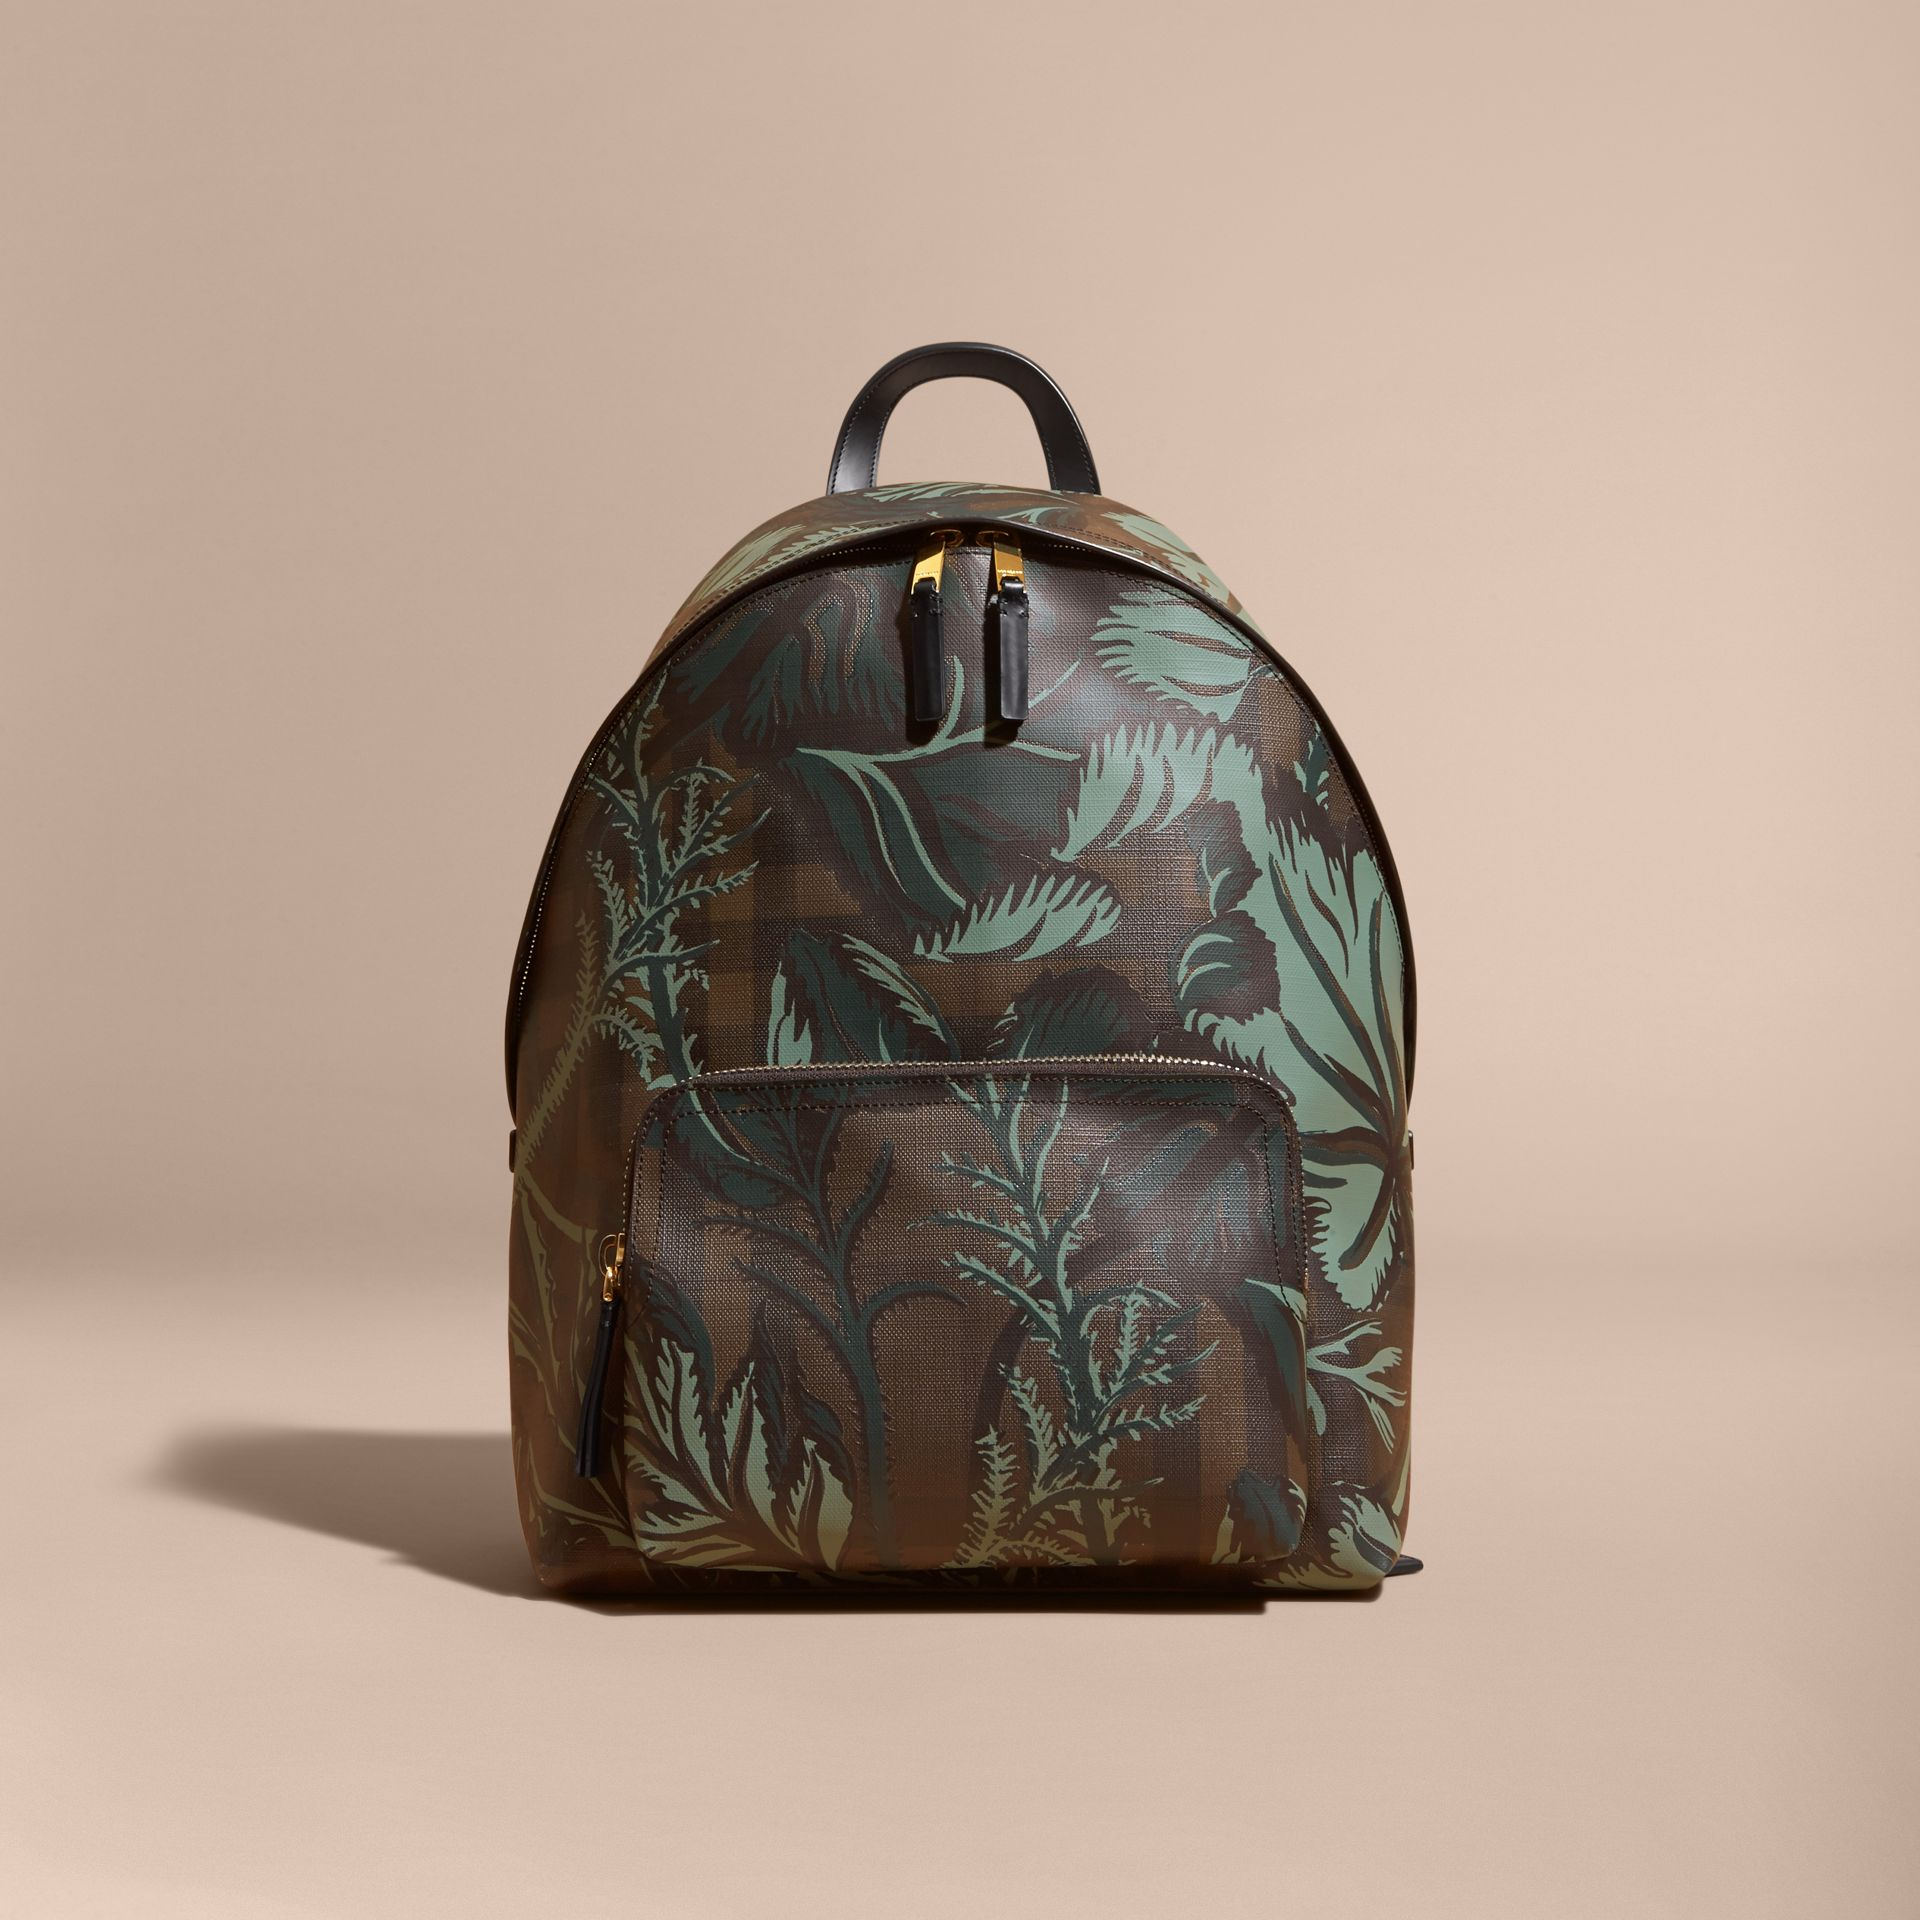 Leather Trim Floral Print London Check Backpack in Chocolate - gallery image 8